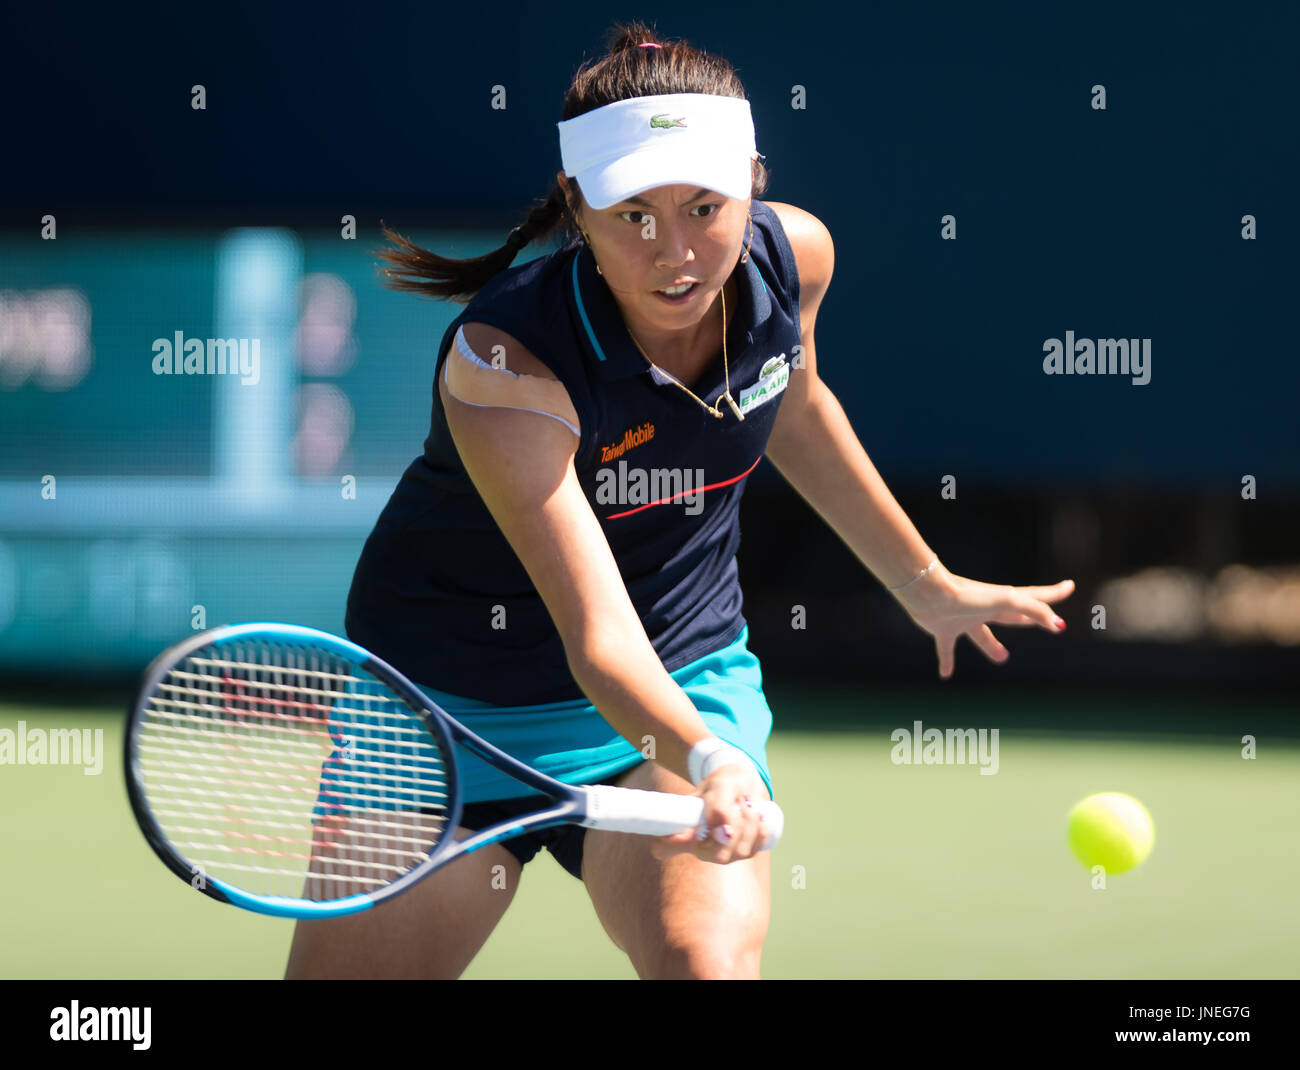 Stanford, United States. 29 July, 2017. Hao-Ching Chang of Taipeh in action at the 2017 Bank of the West Classic WTA International tennis tournament © Jimmie48 Photography/Alamy Live News - Stock Image